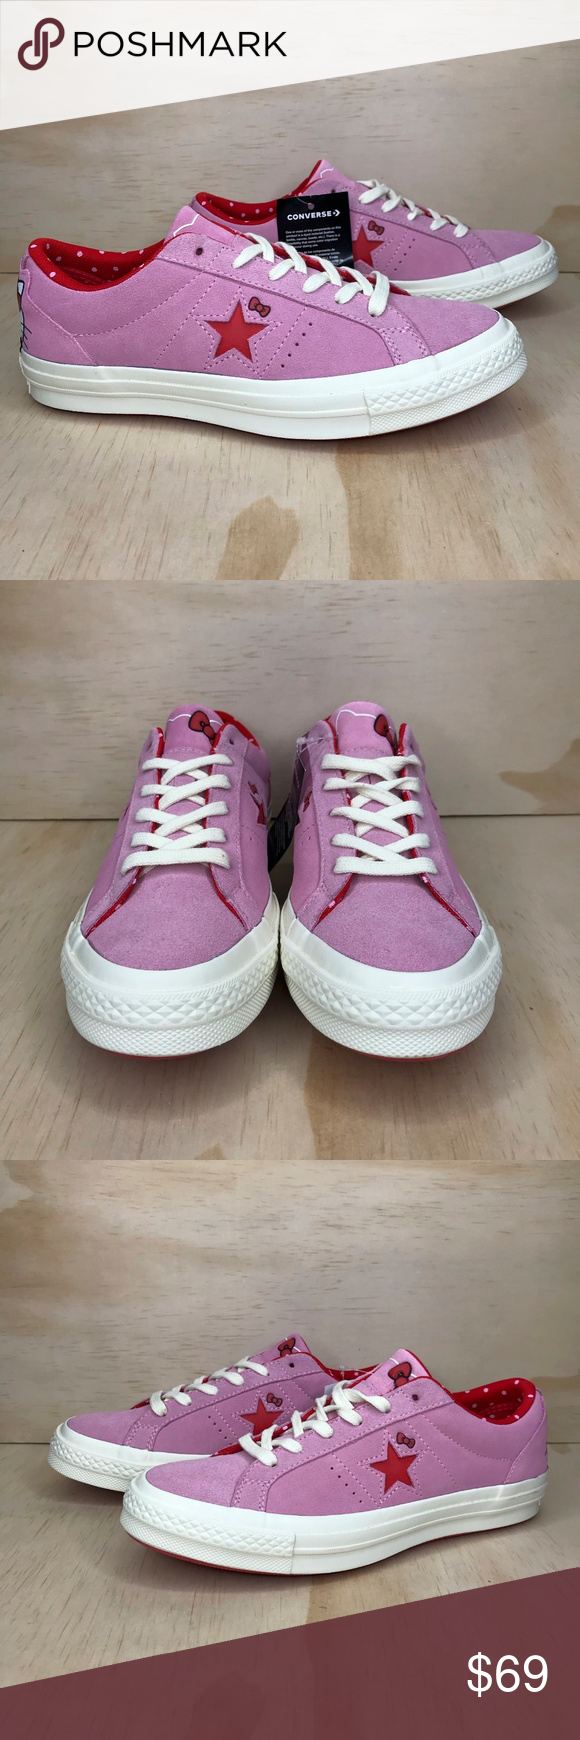 NIB Converse Hello Kitty One Star Limited Edition Brand new